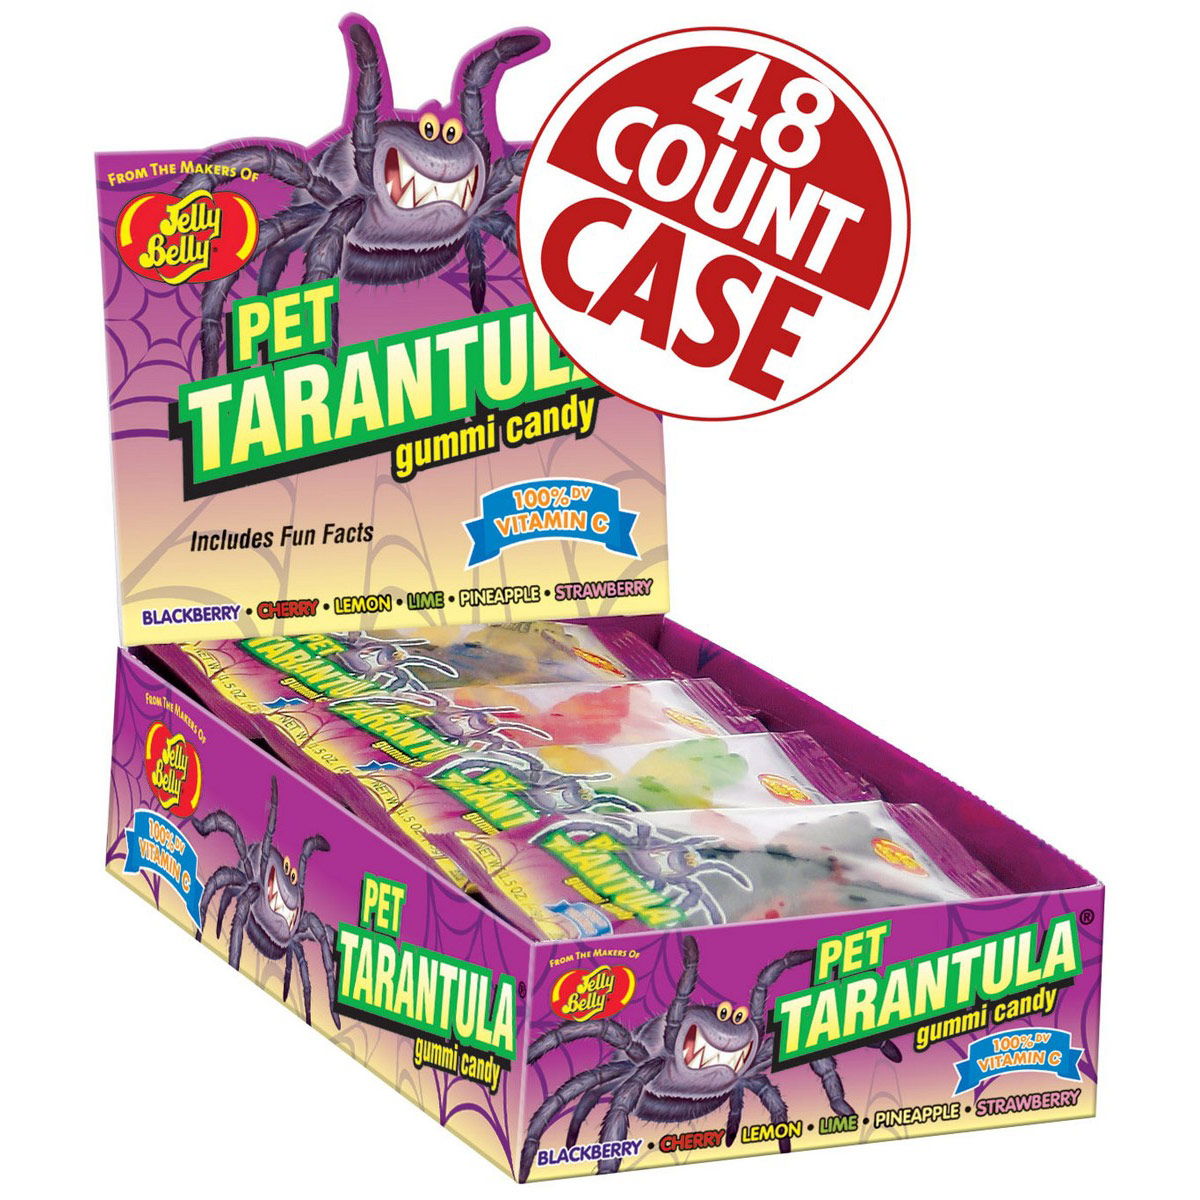 Gummi Pet Tarantulas - 1.5 oz - 48 Count Case